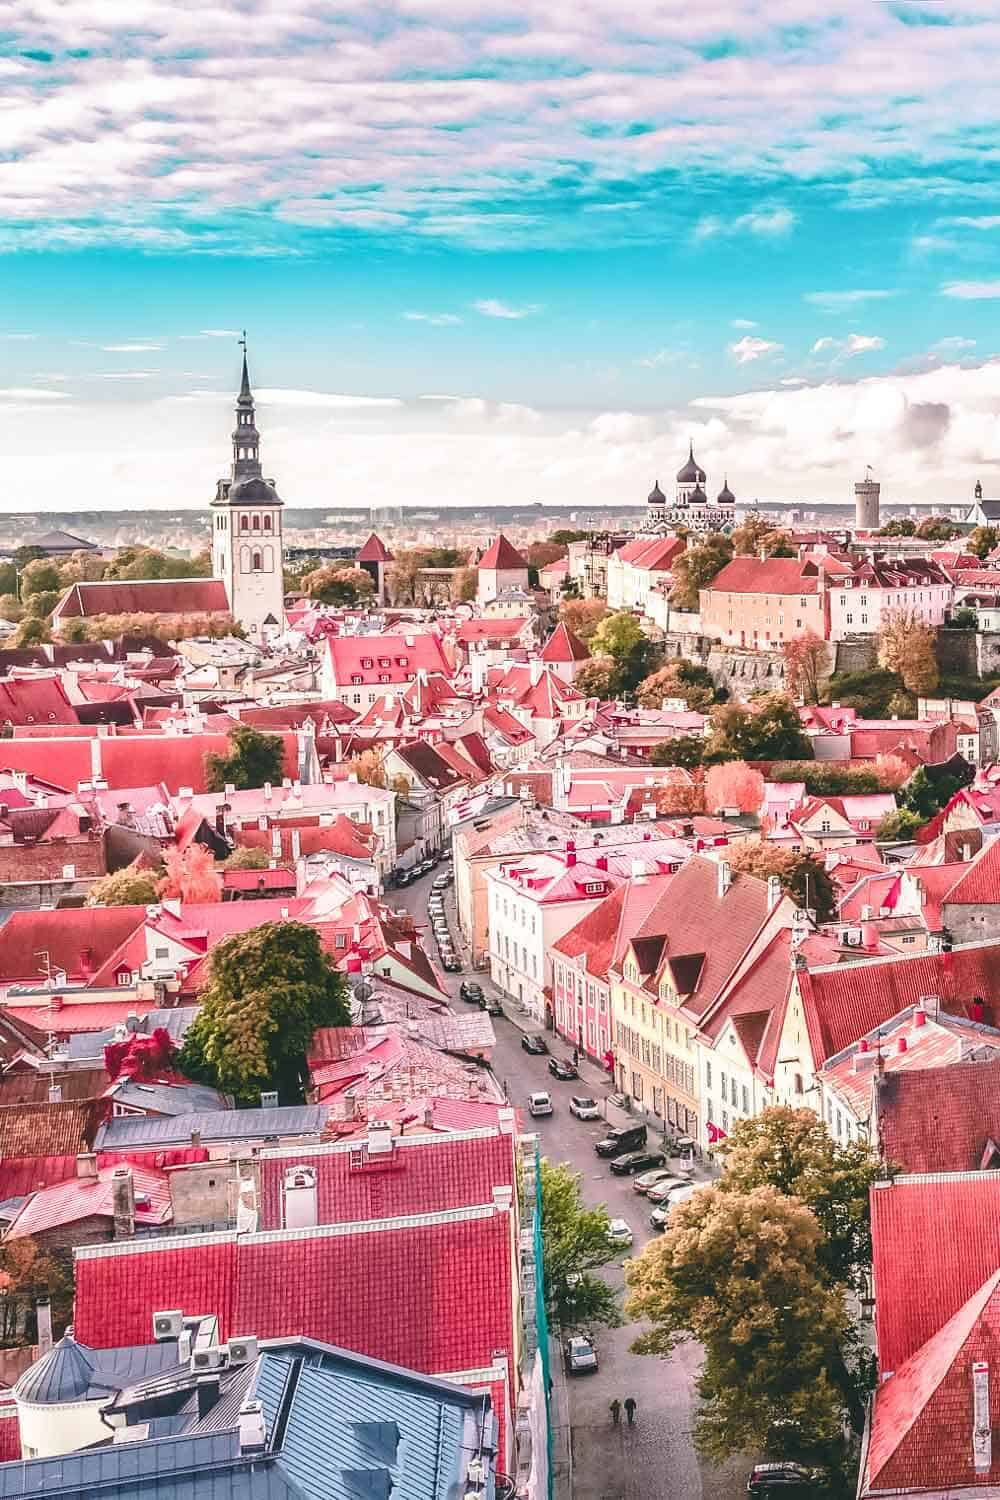 The best viewing point in Old Town Tallinn. Best things to do in Tallinn Estonia! If you are planning on traveling to Europe you need to check out Tallinn. It is one of the most beautiful cities in Europe - a real life fairy tale! Check out the top 10 things to do in Tallinn on avenlylanetravel.com | #tallinn #tallinnestonia #estonia #europe #europetravel #travelinspiration #beautifulplaces #bucketlist #travelbucketlist #europebucketlist #avenlylane #avenlylanetravel